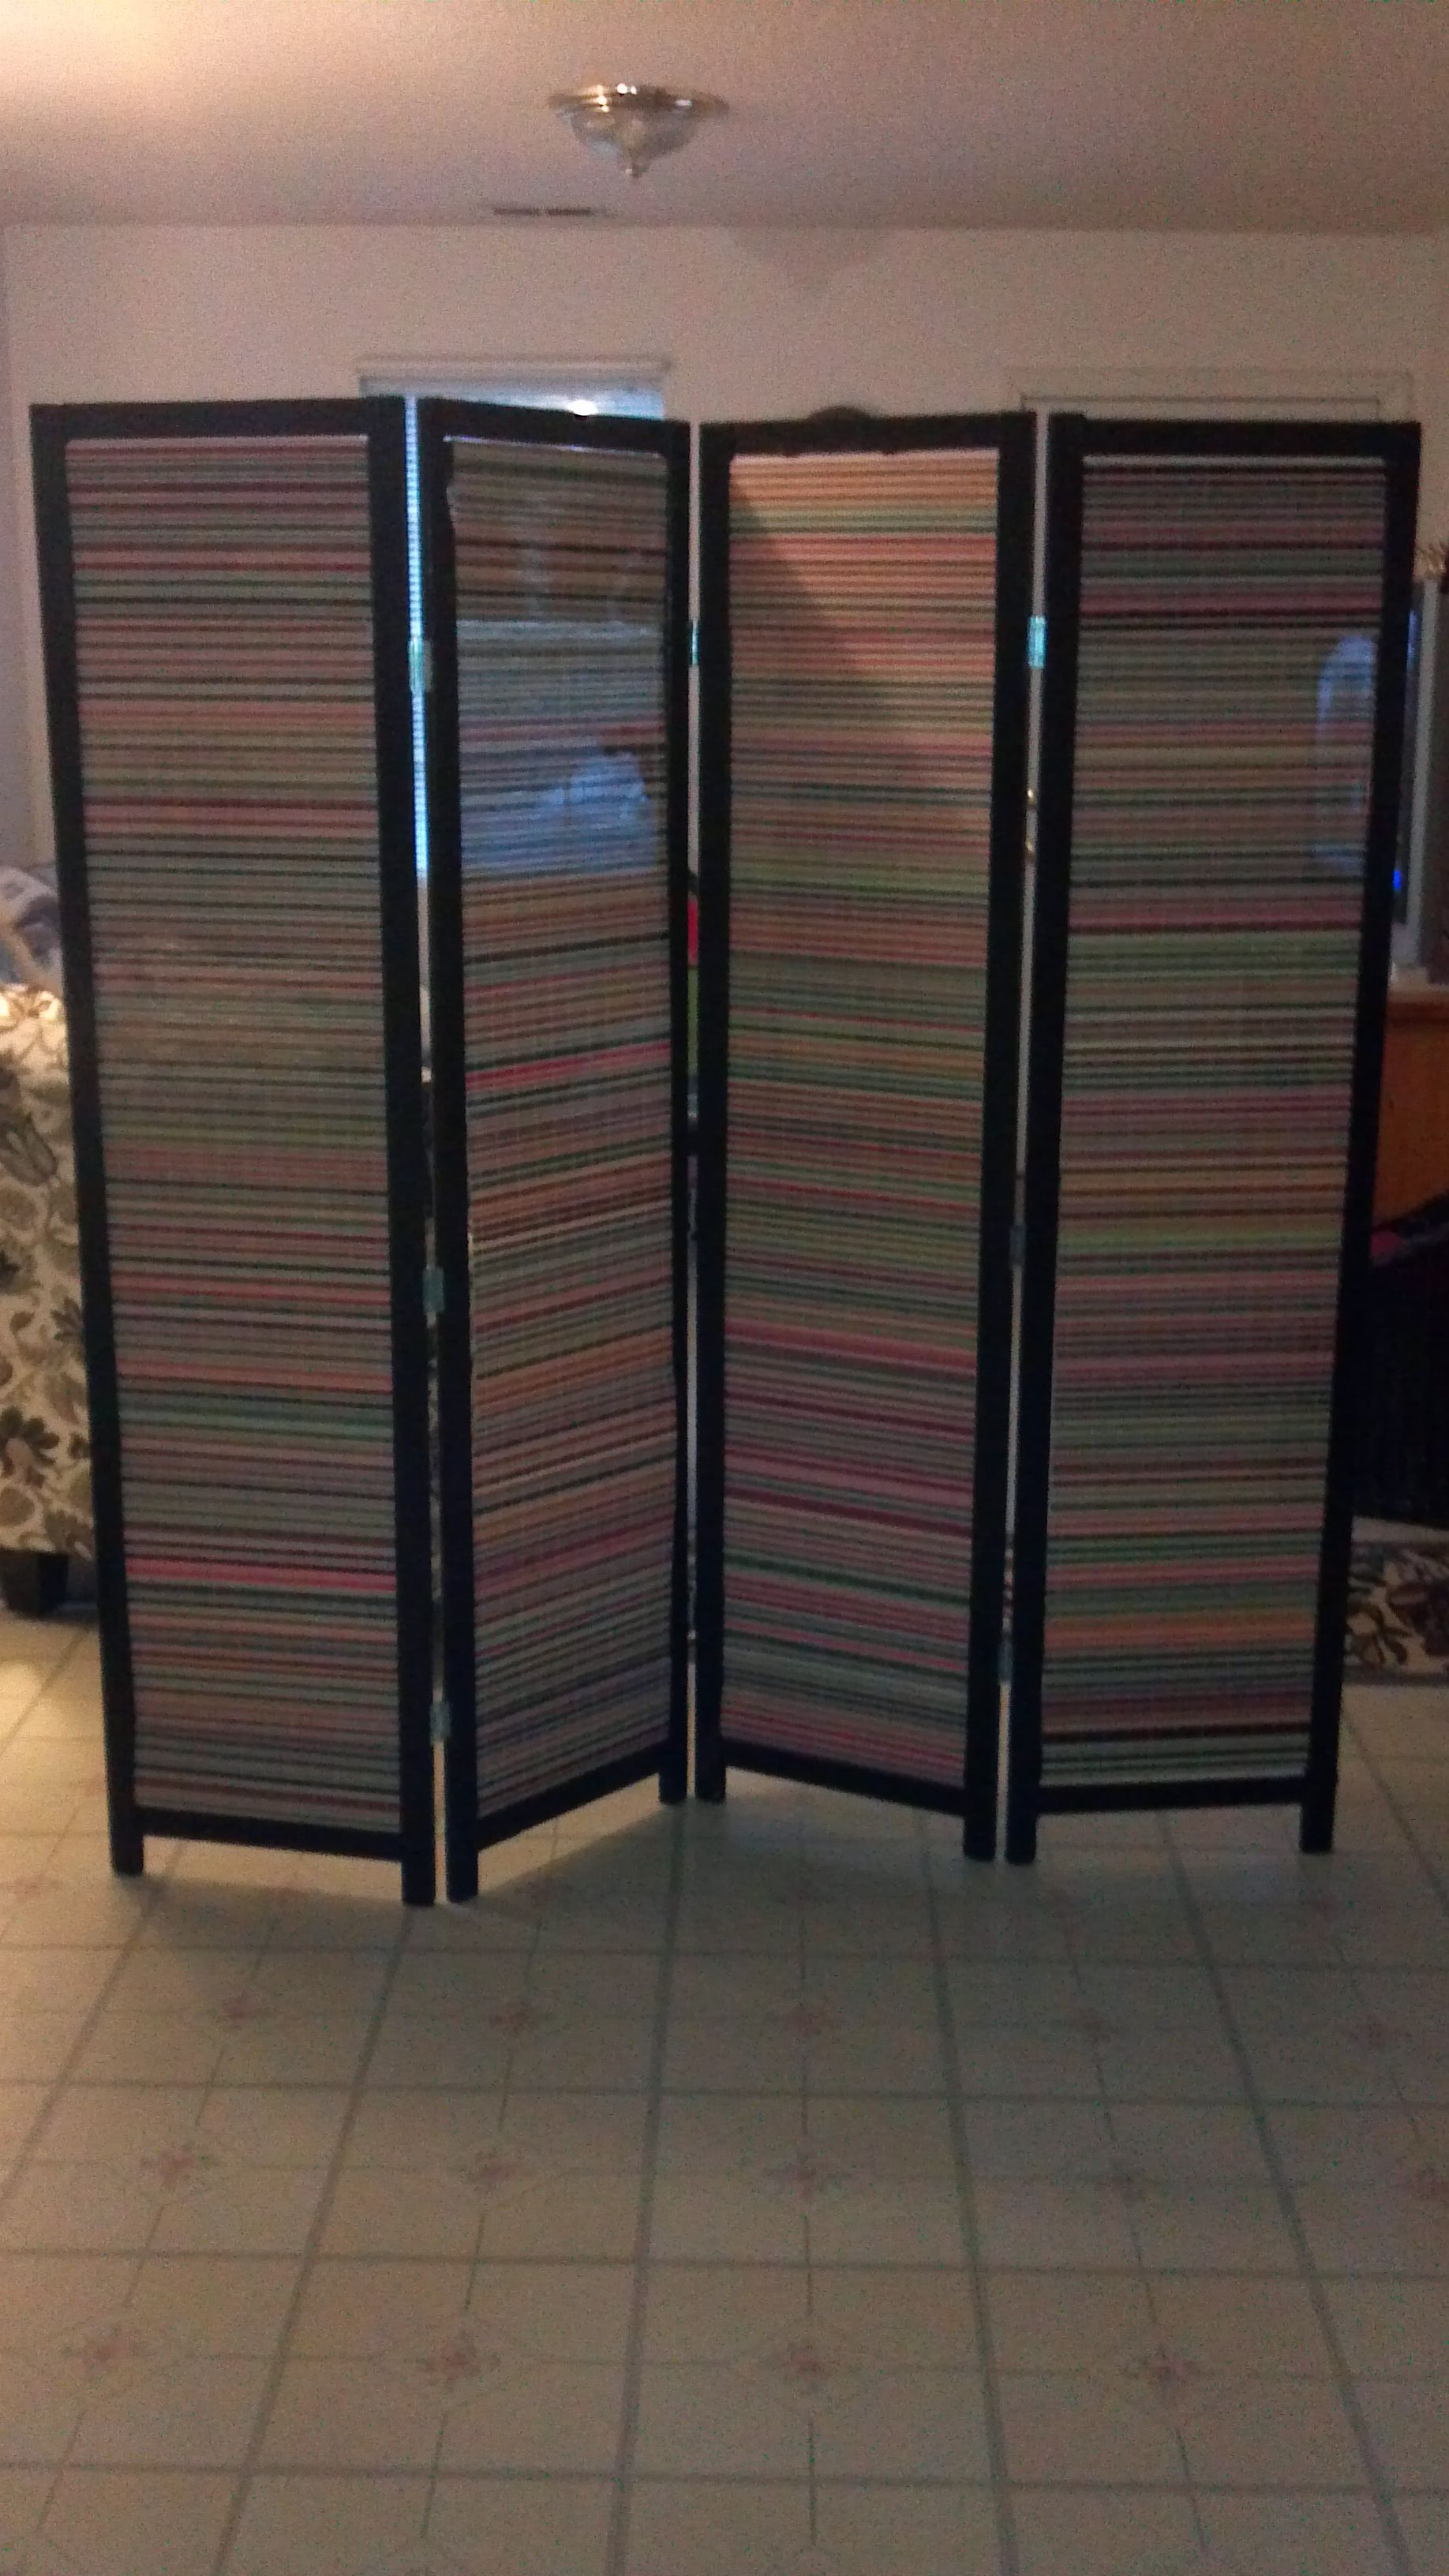 DIY room divider spray painted an old room divider from an antique